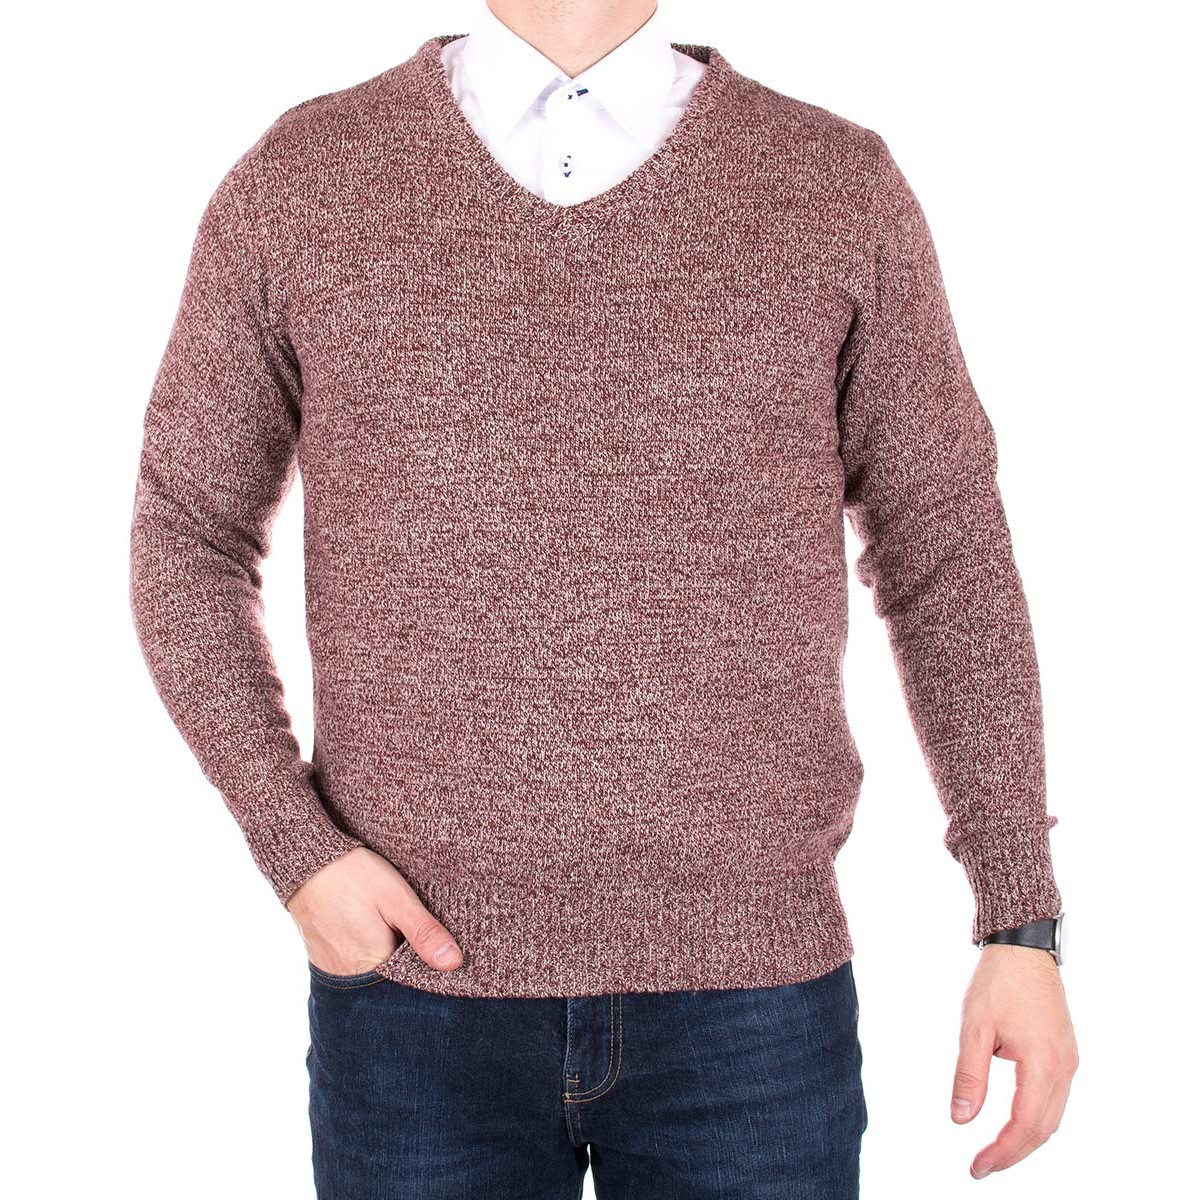 Sweter Ksdulon bordo